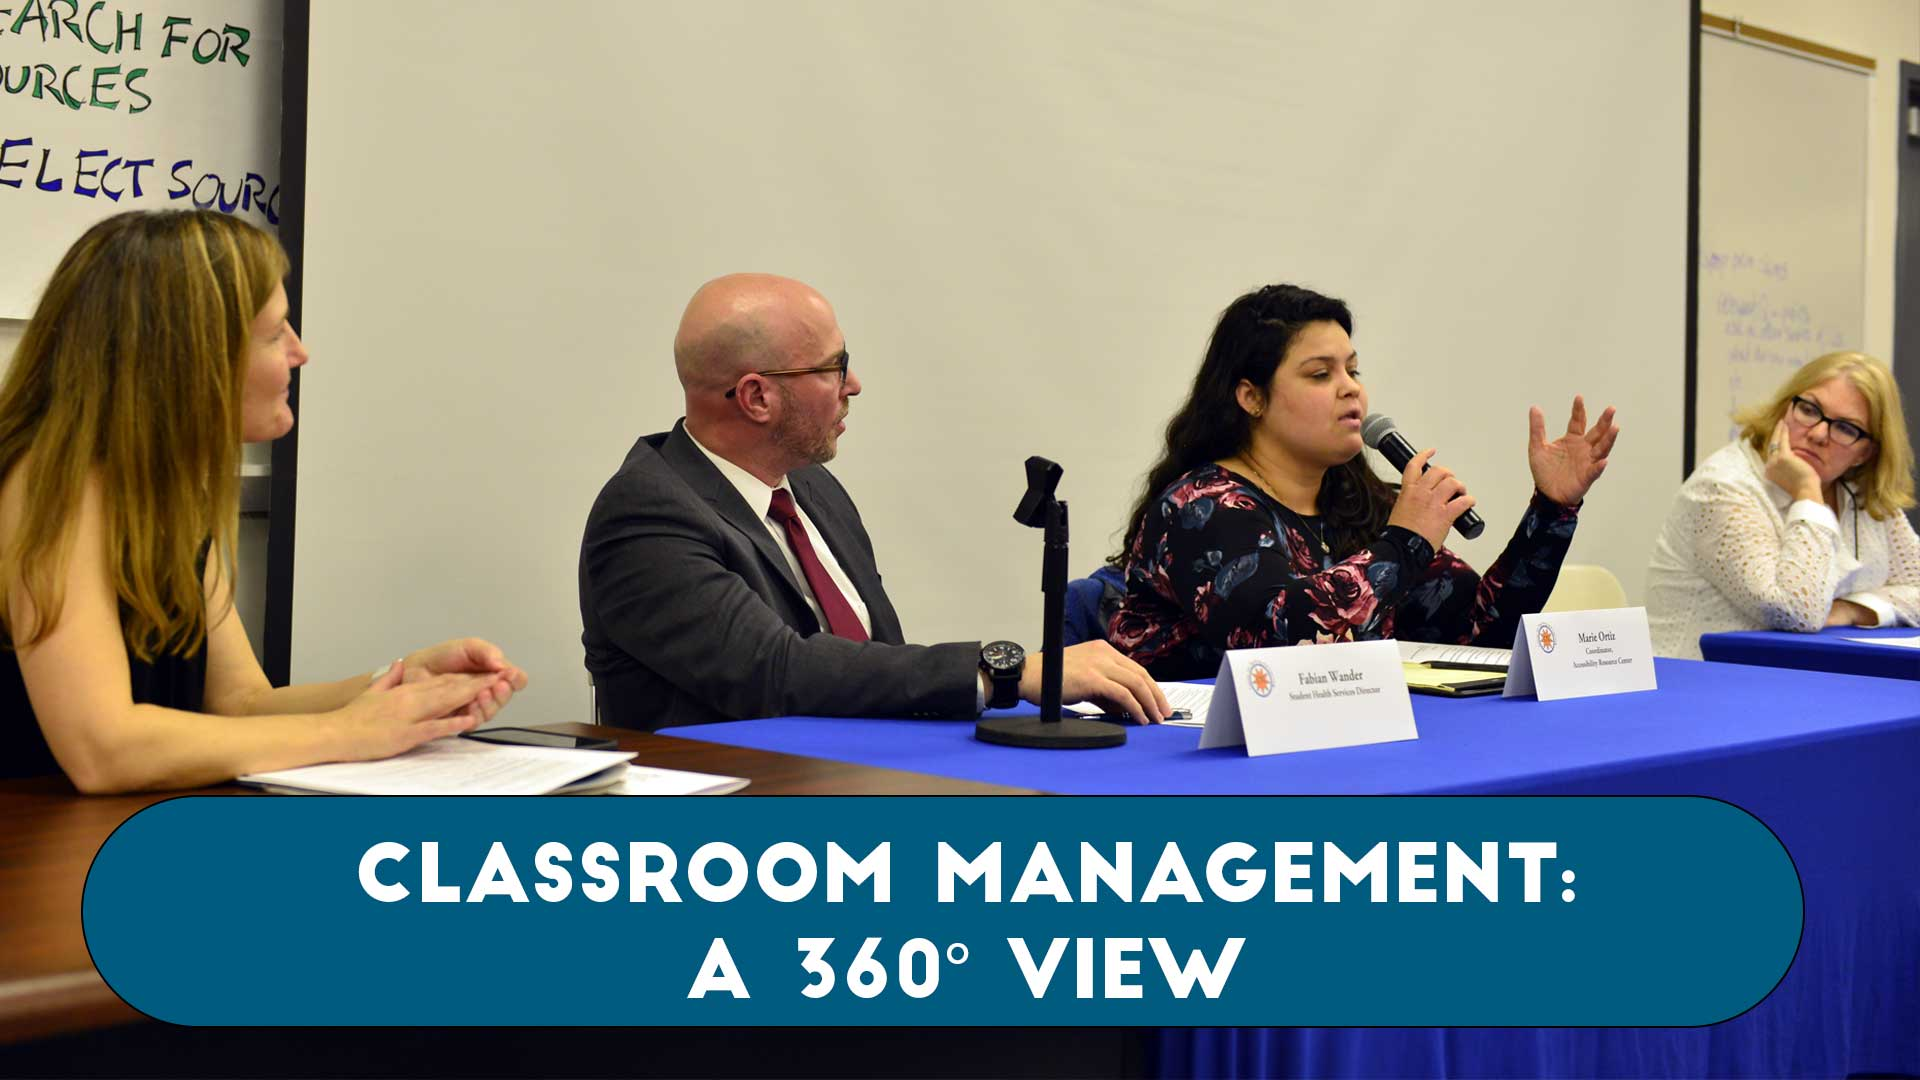 Classroom Management: A 360 View